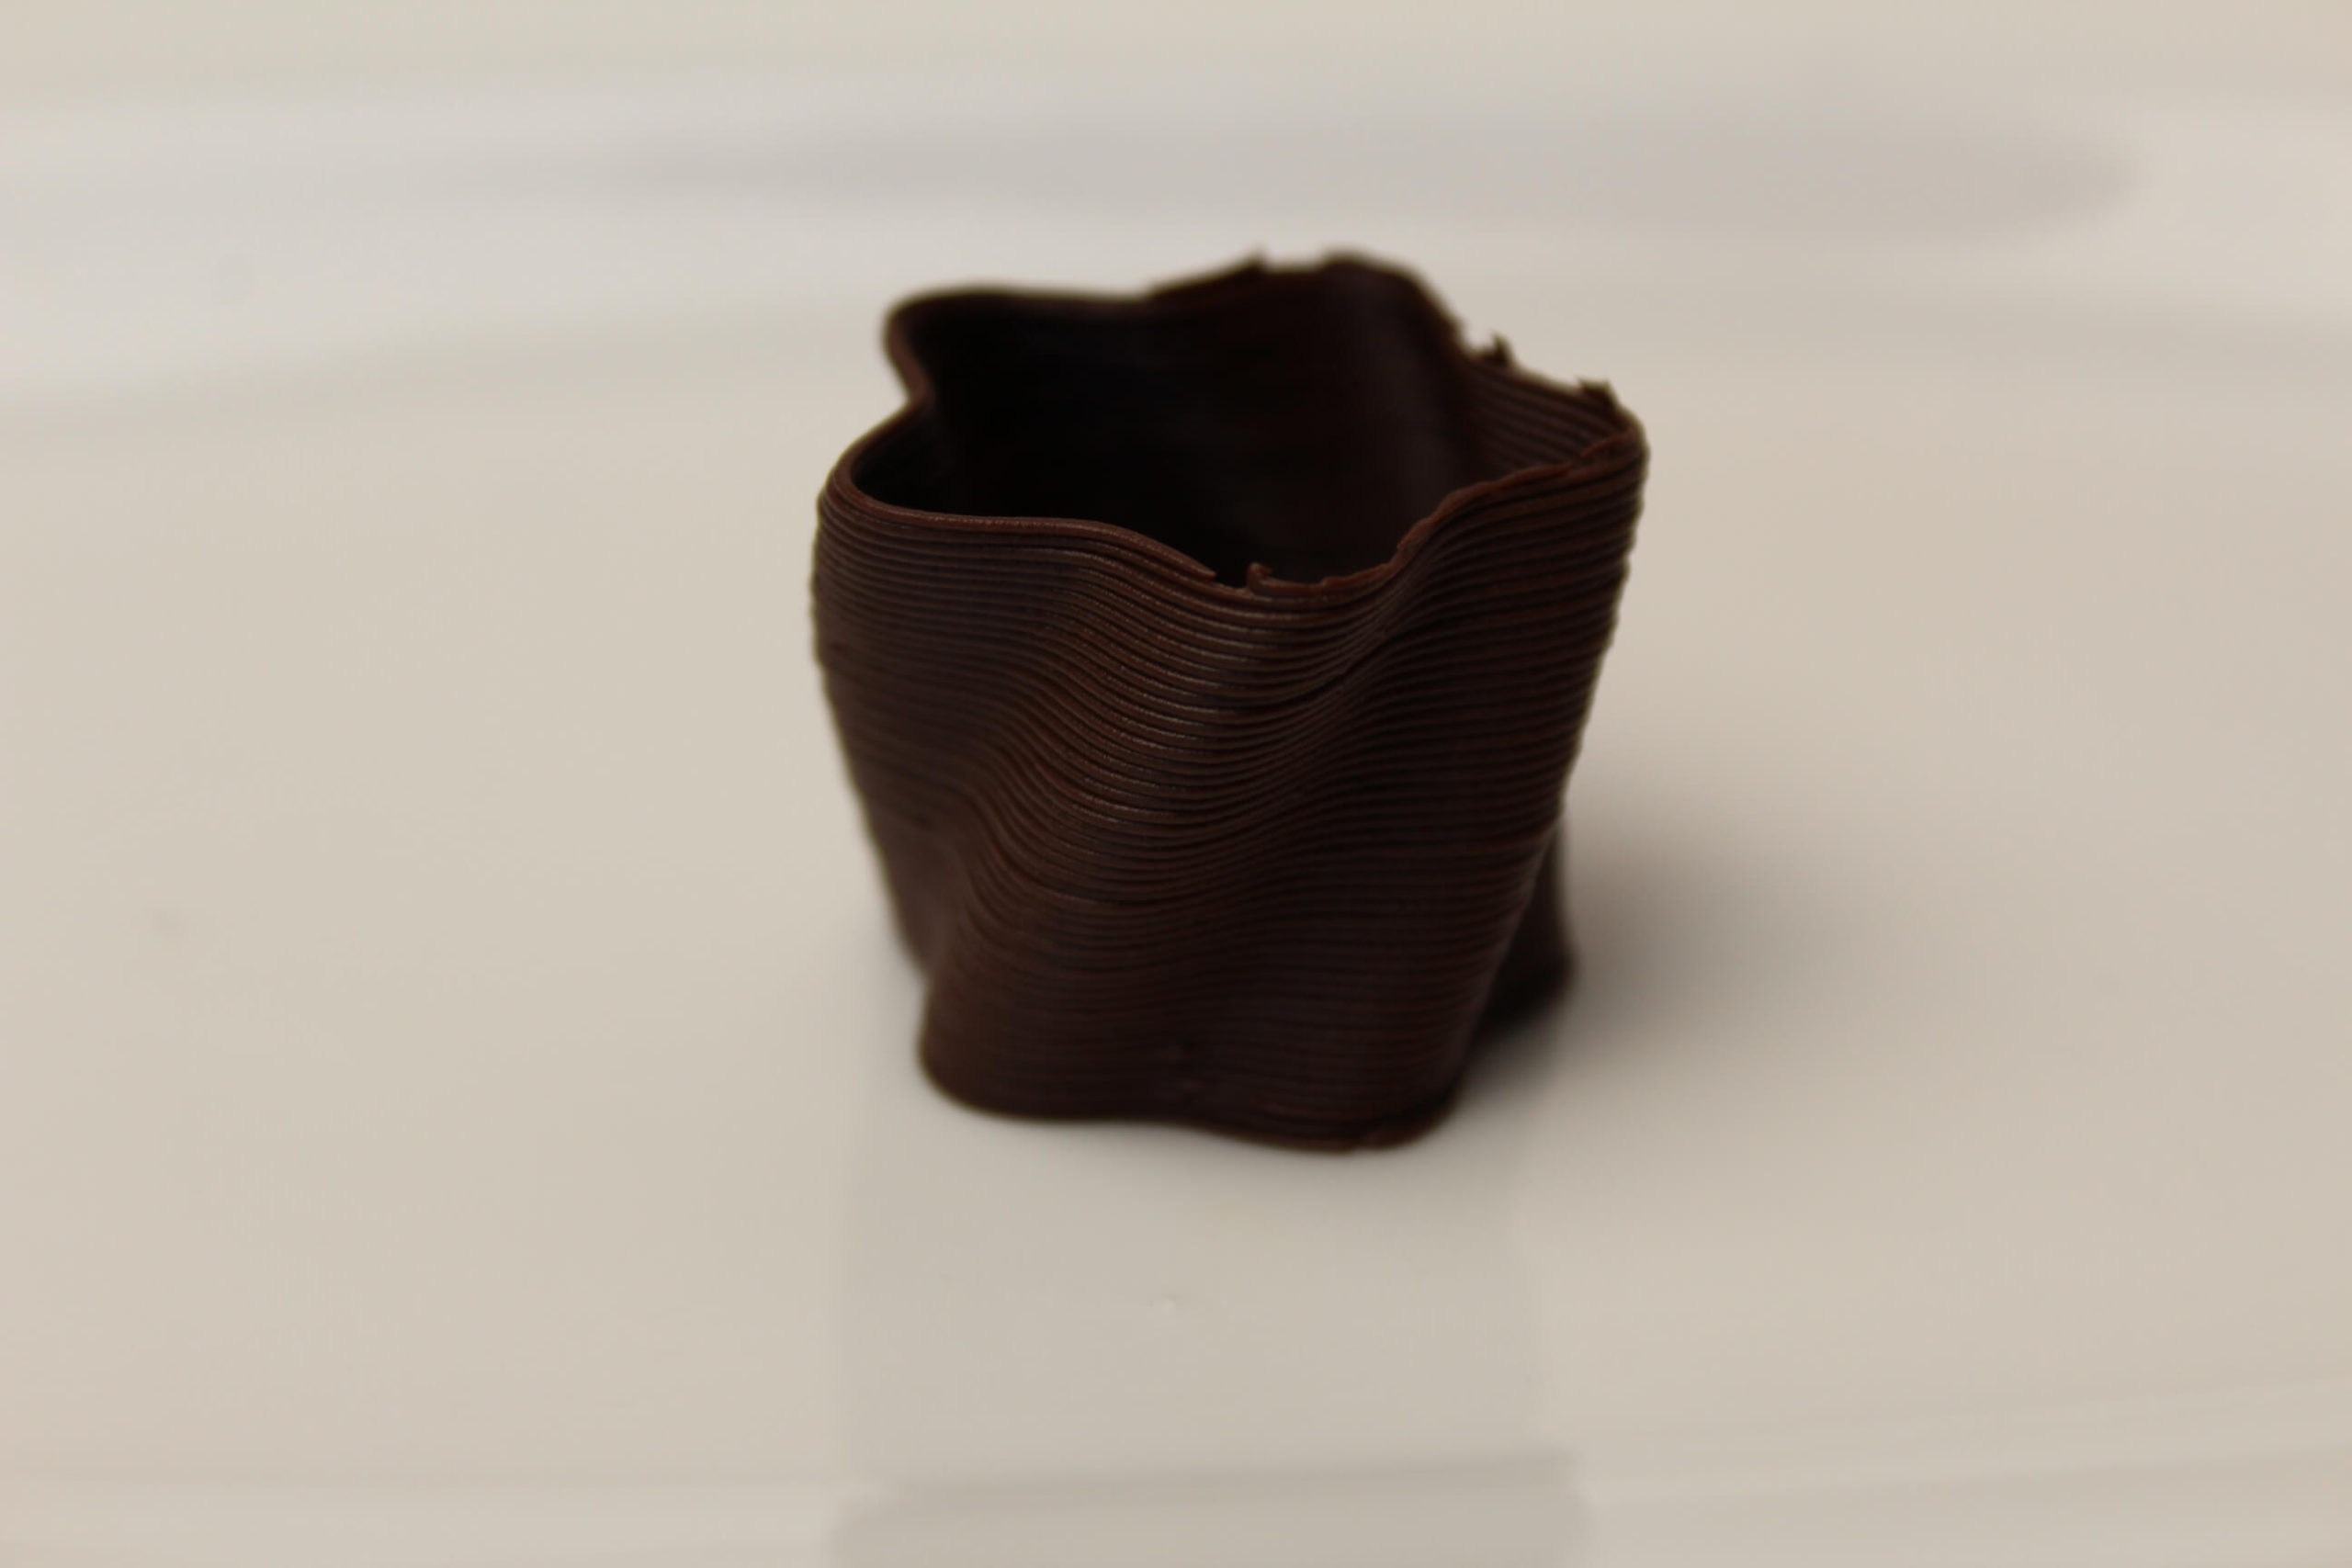 Star-Vase-Mycusini-Chocolate-3D-print-1